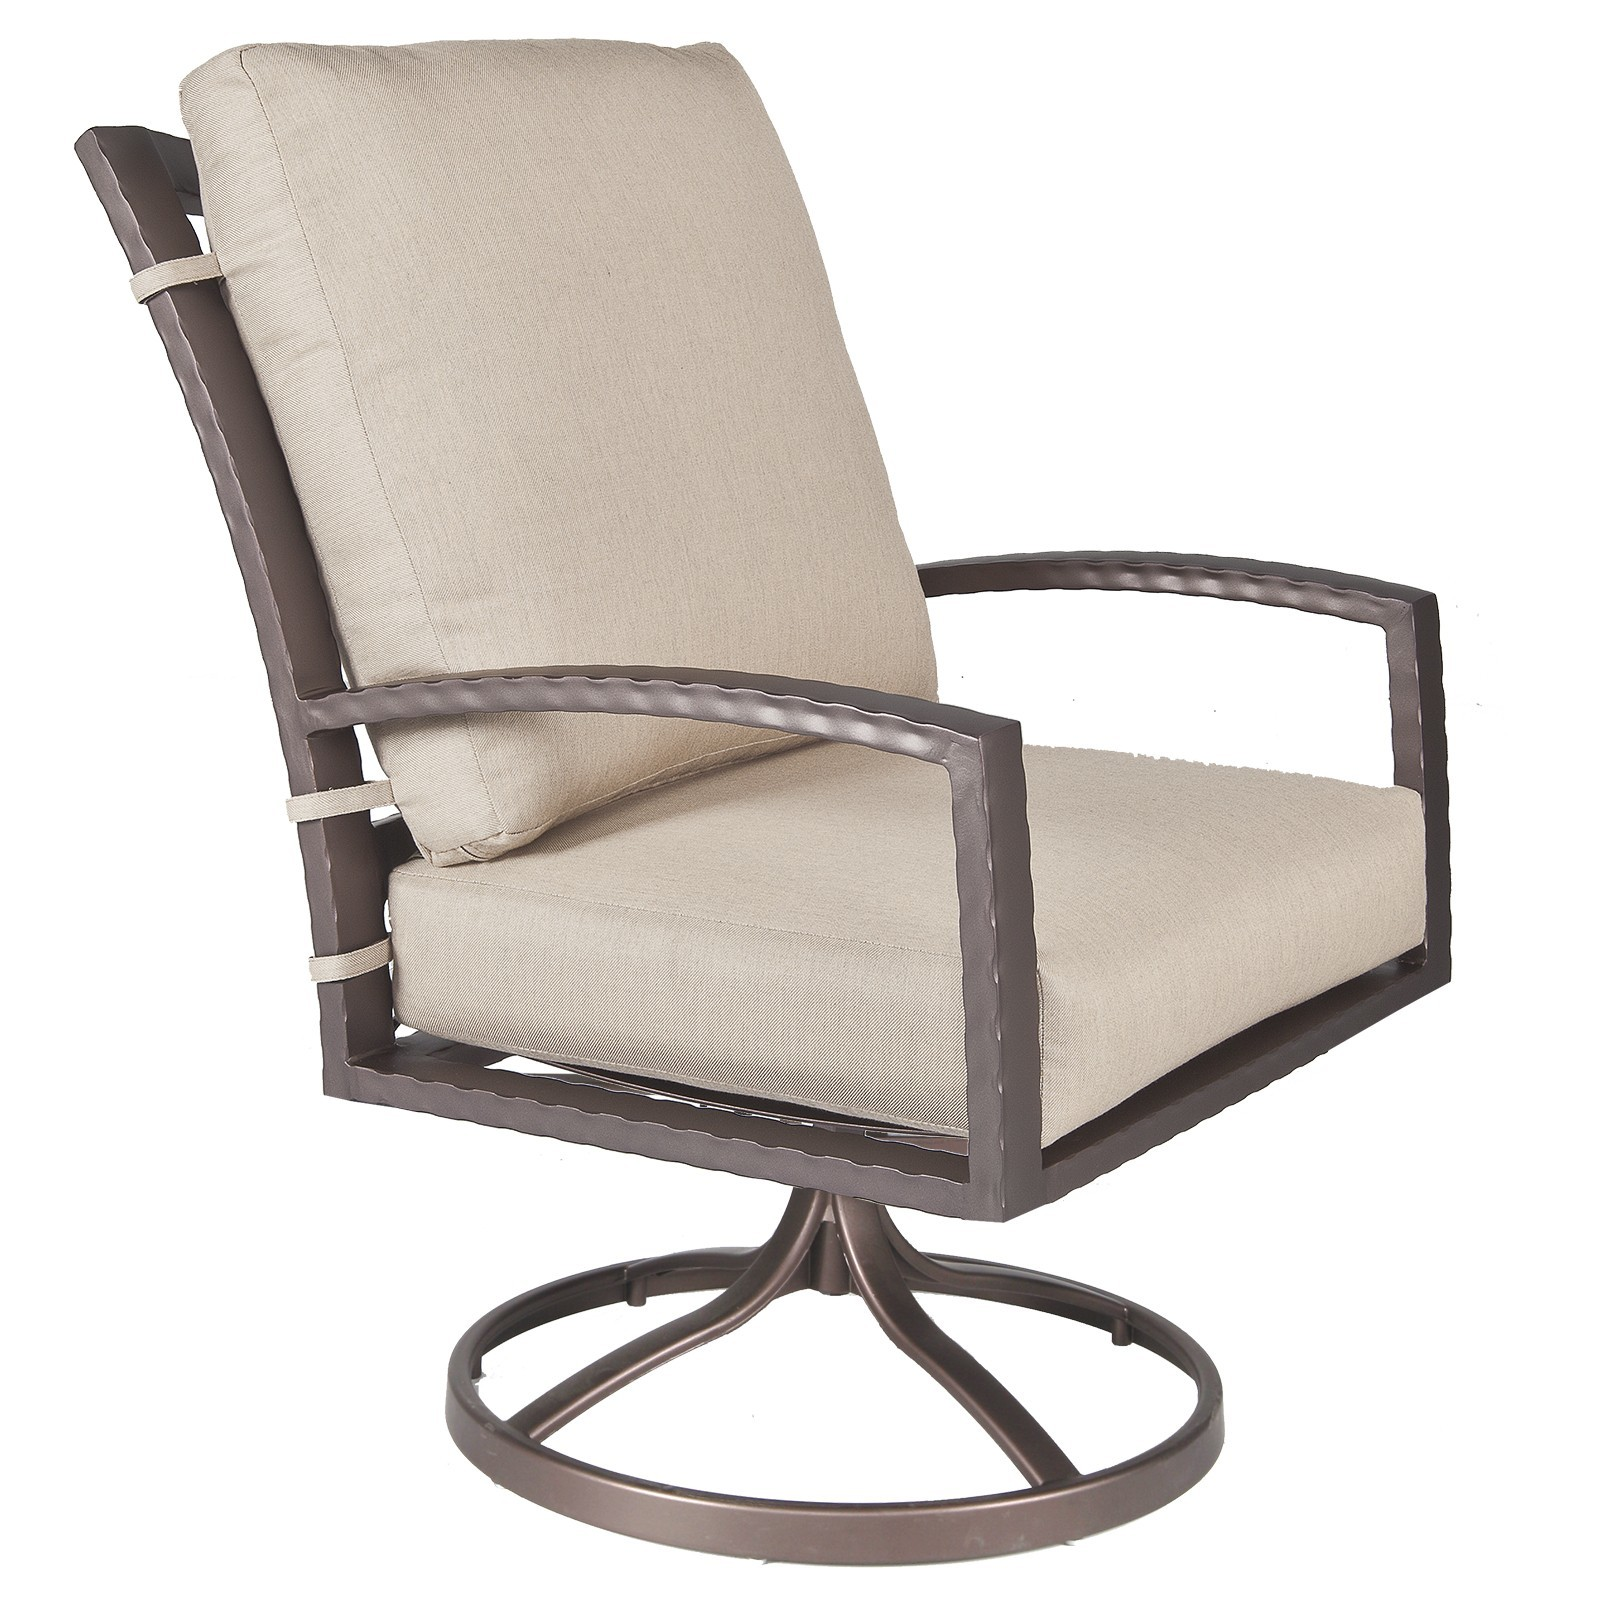 swivel rocker outdoor dining chairs how to make a wooden chair seat sol club arm hauser 39s patio